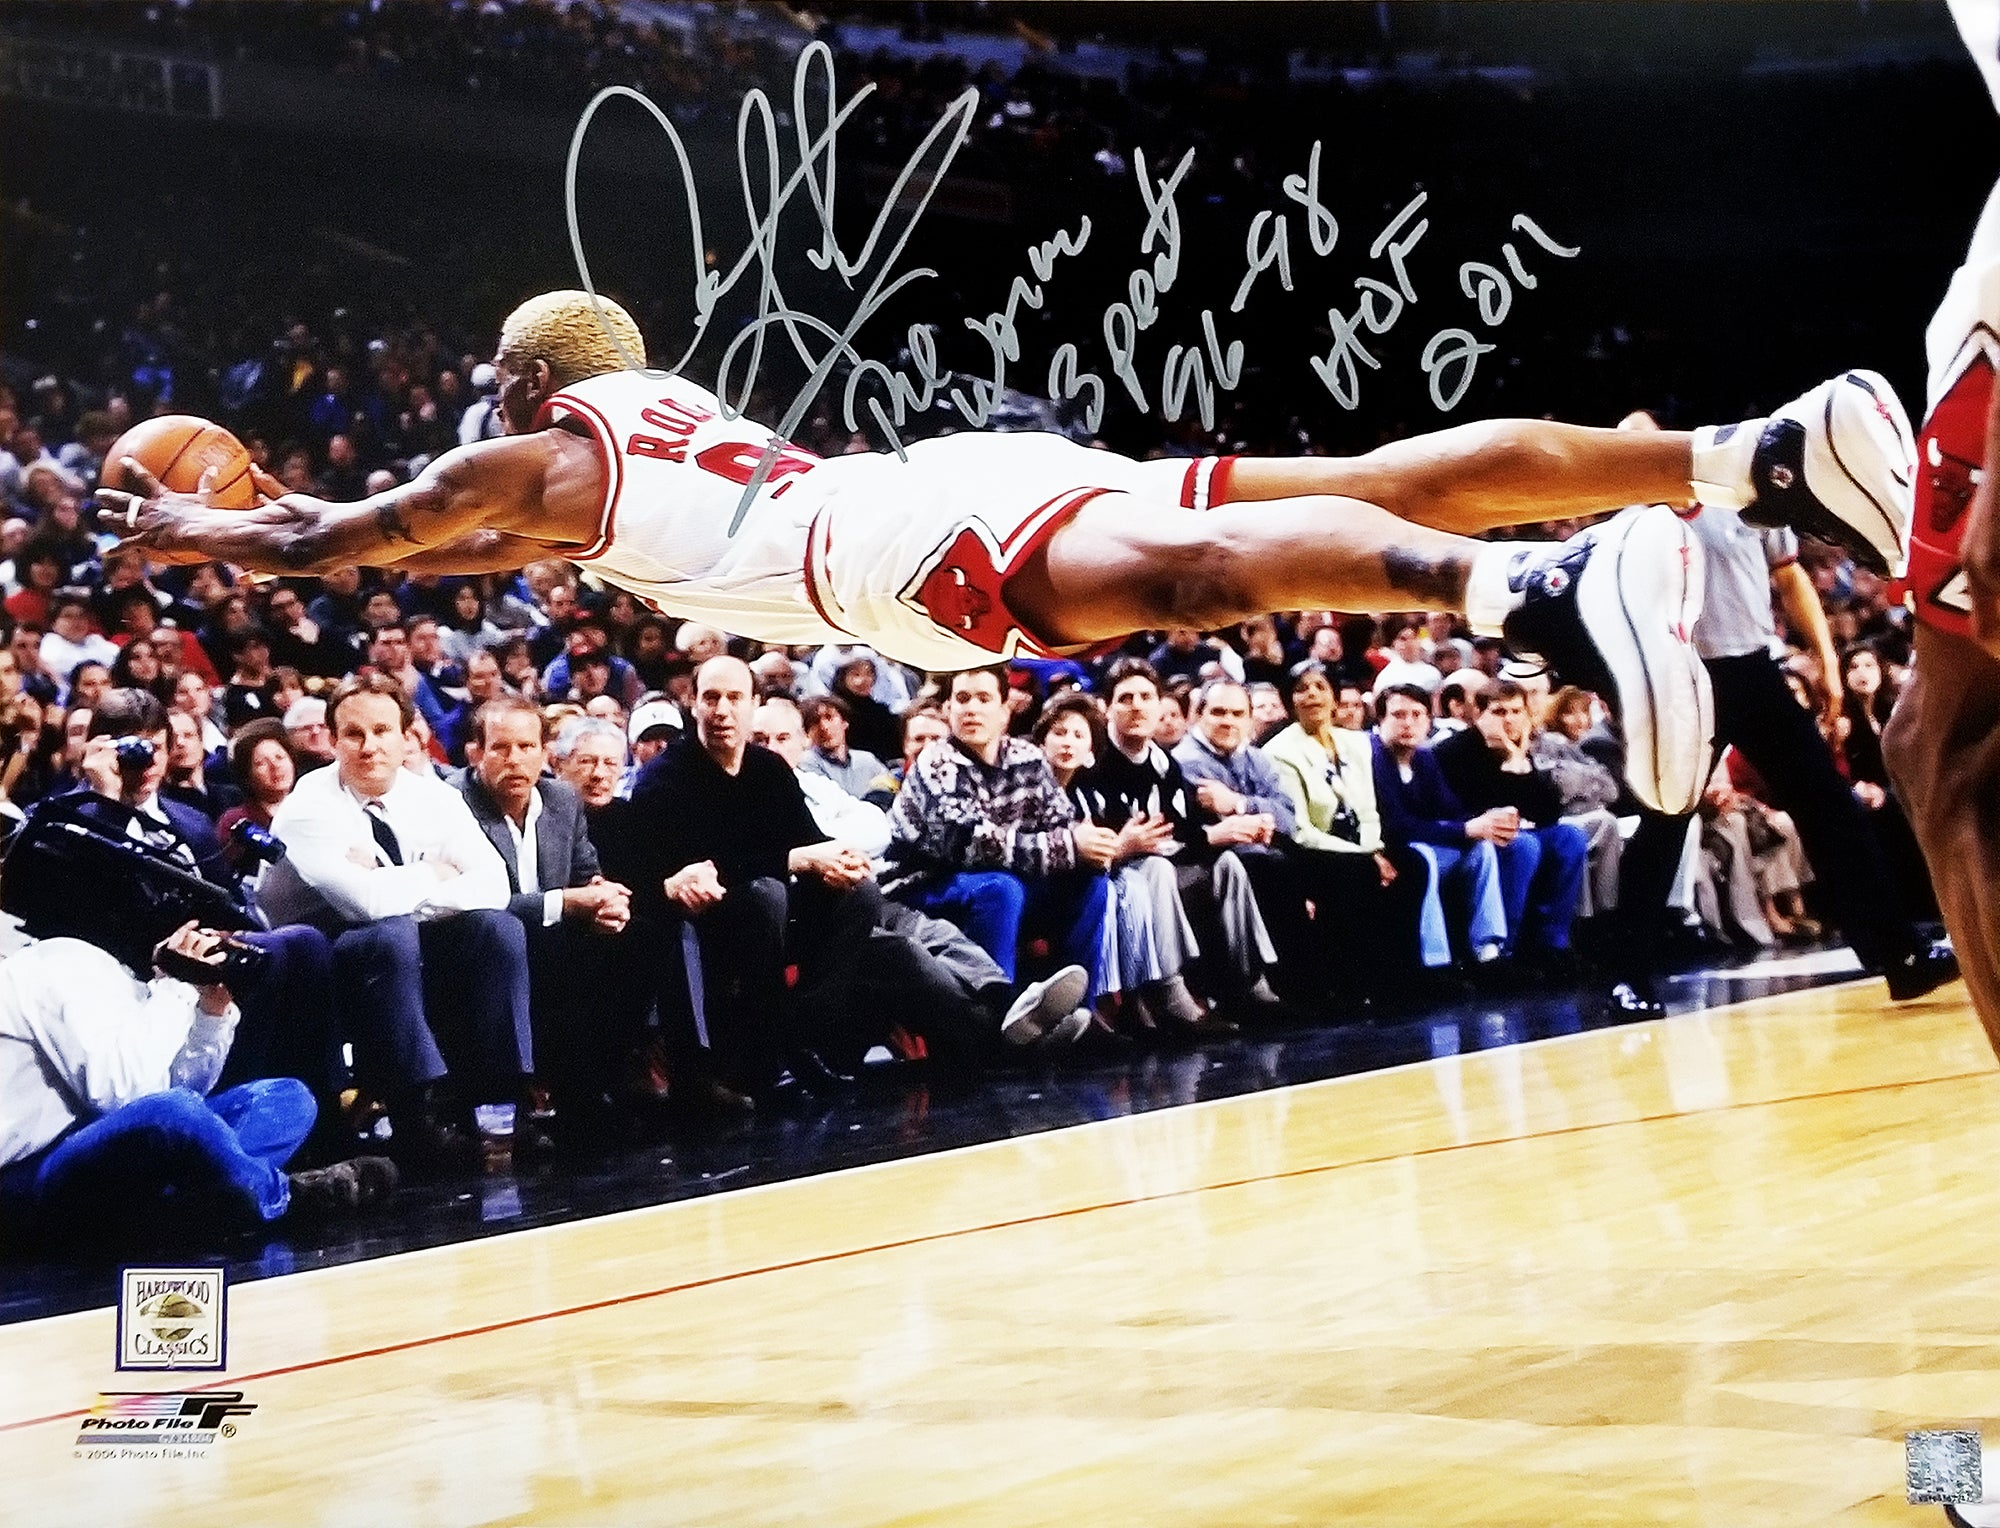 Dennis Rodman Signed Chicago Bulls Diving For Basketball 16x20 Photo w/The Worm, 3 Peat 96-98, HOF 2011 PSM-Powers Sports Memorabilia